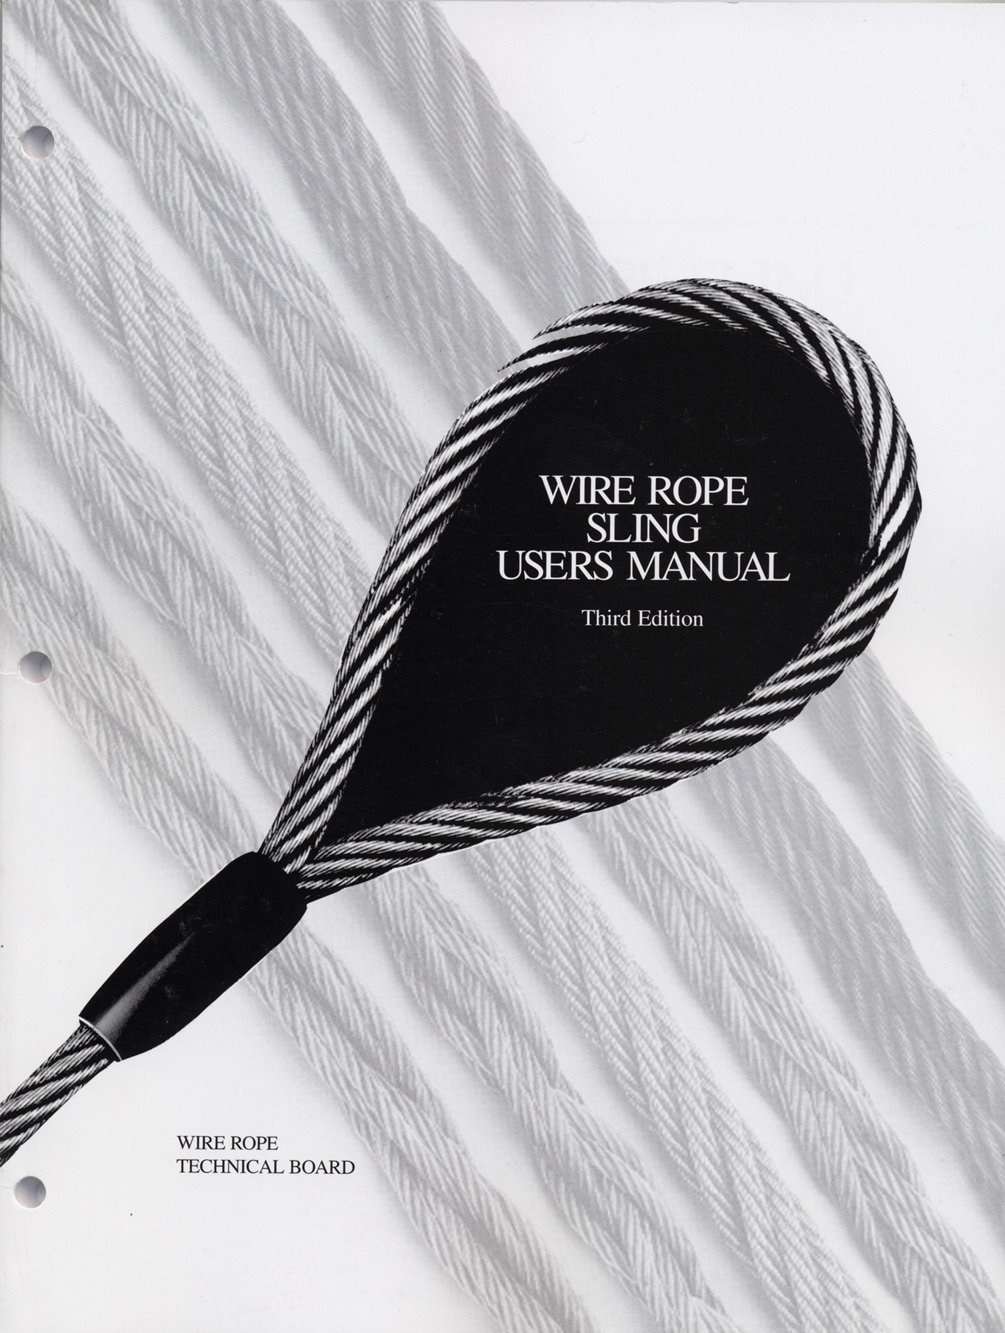 Amazon.com: Wire Rope Sling Users Manual 3rd Edition: Everything Else